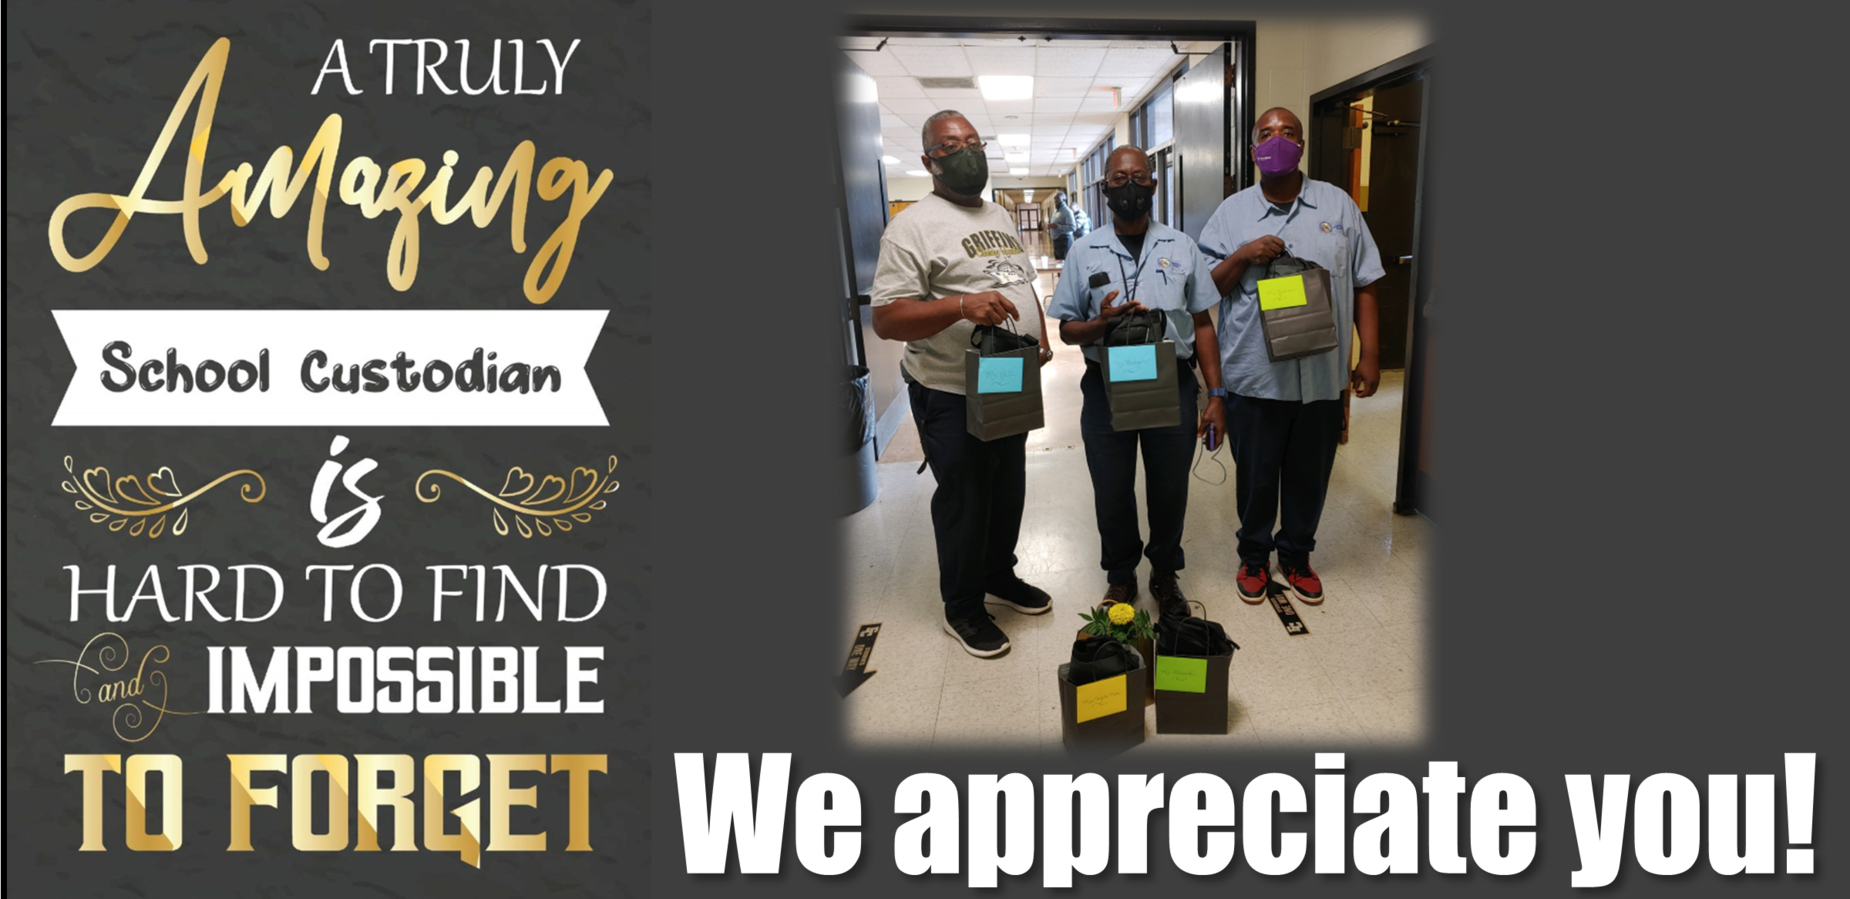 We appreciate you. A truly amazing school custodian is hard to find and impossible to forget.